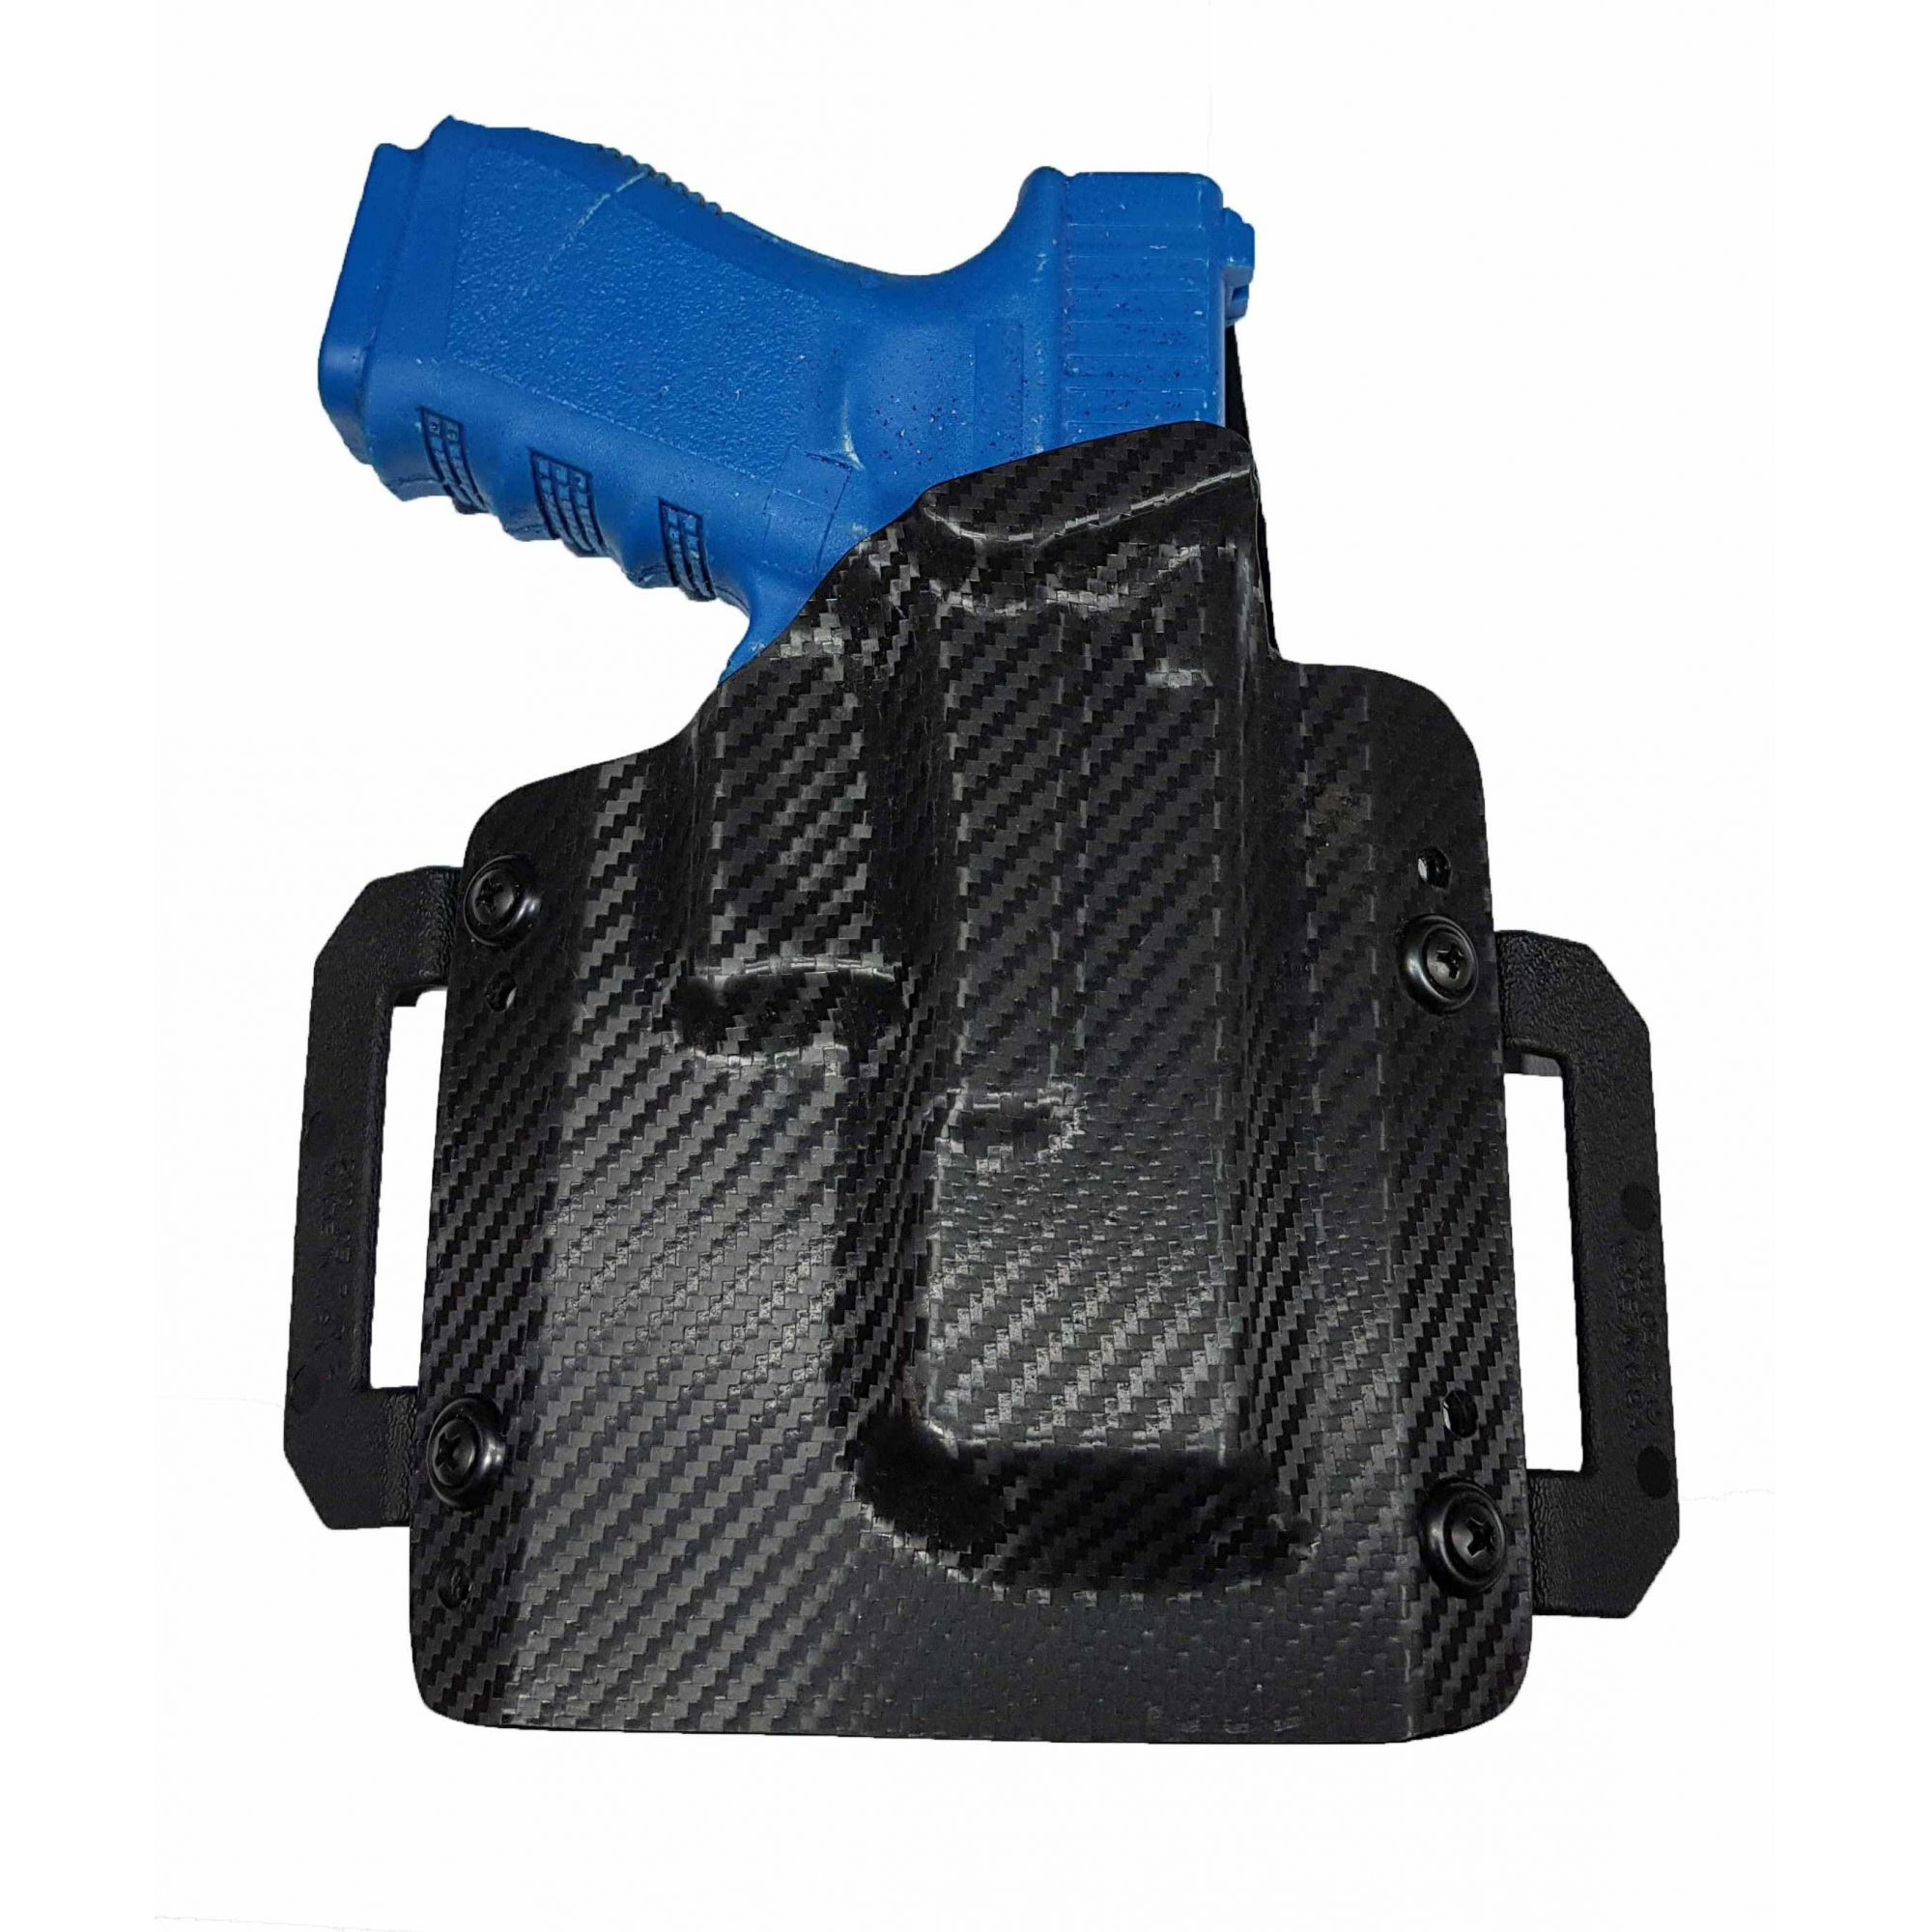 Coldre Kydex Externo G19/25/23